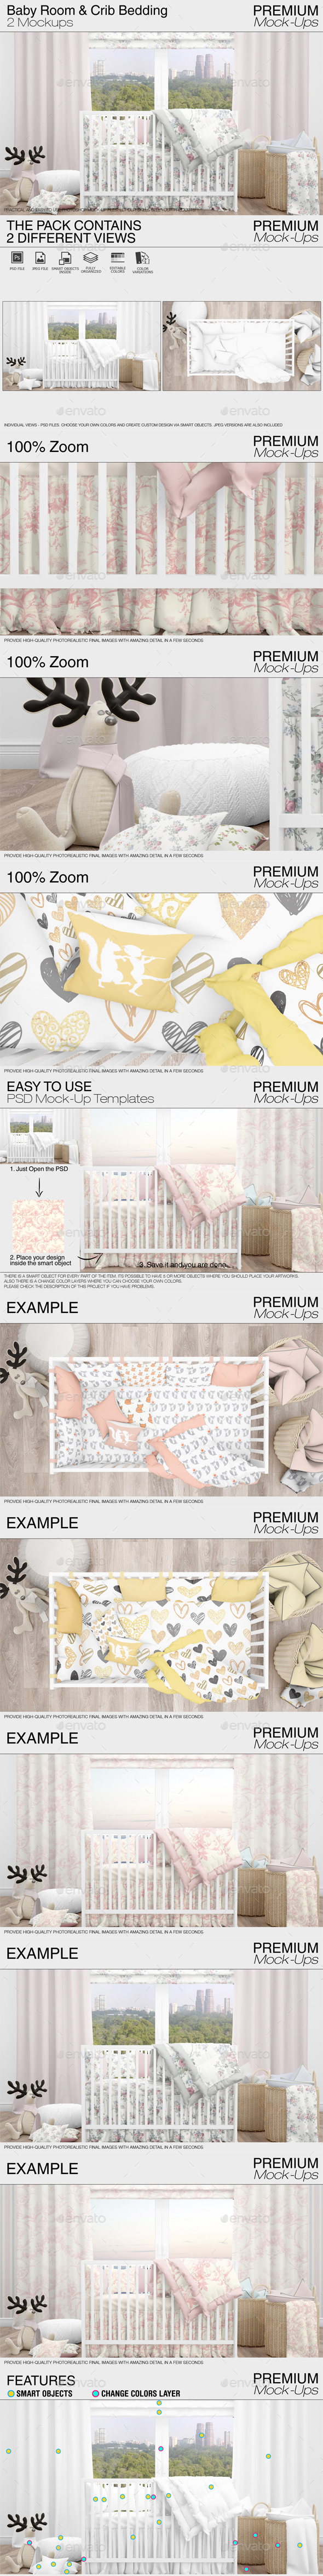 Baby Room & Crib Bedding Set - Print Product Mock-Ups